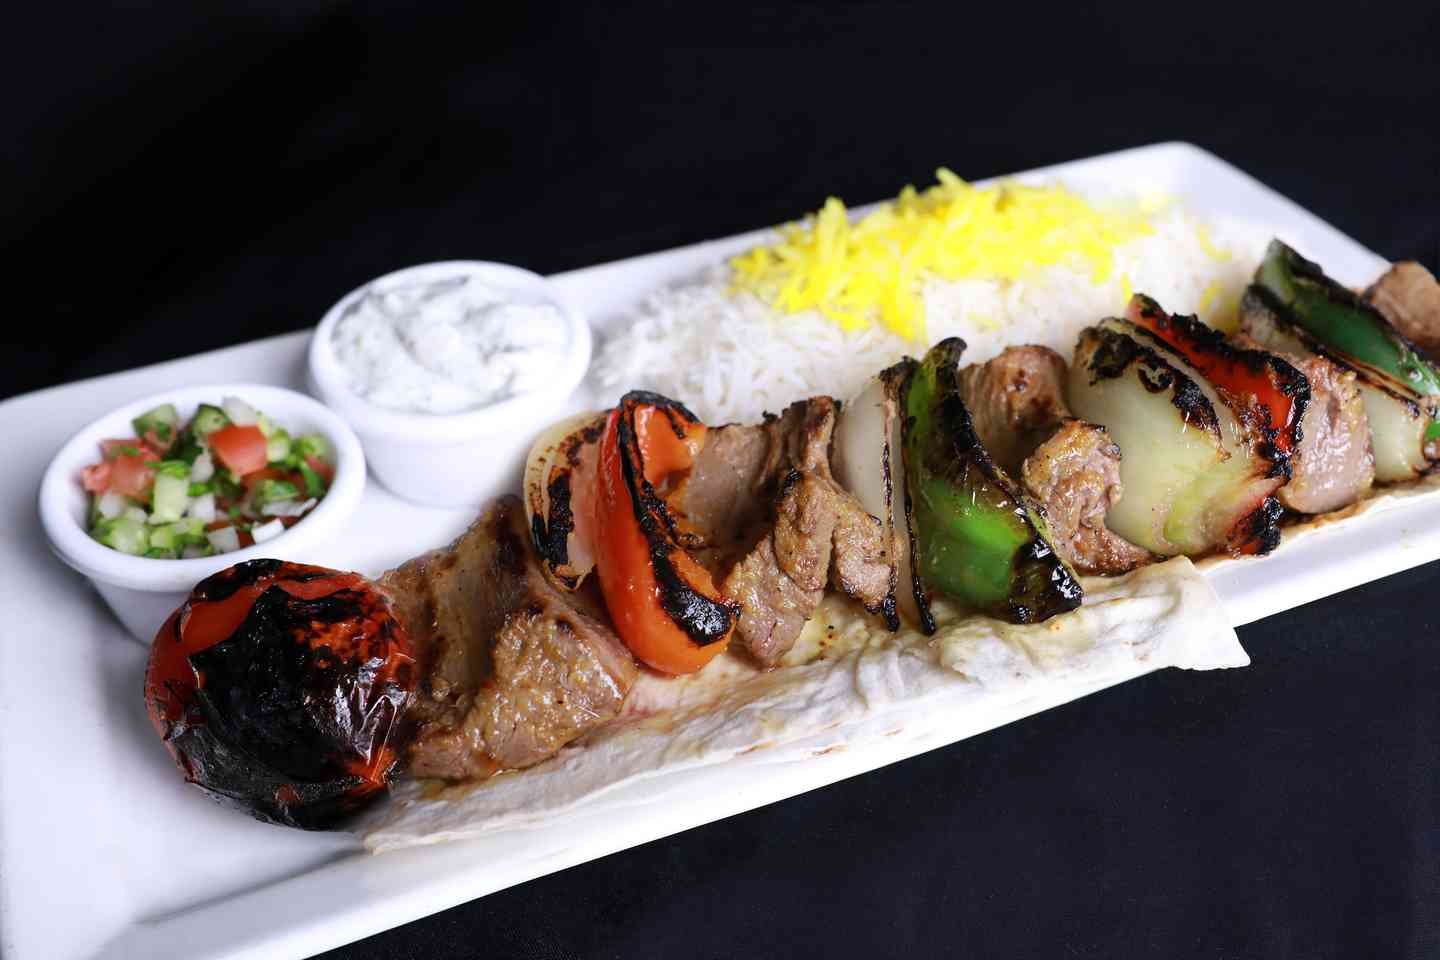 Filet Mignon Shish Kabob Plate